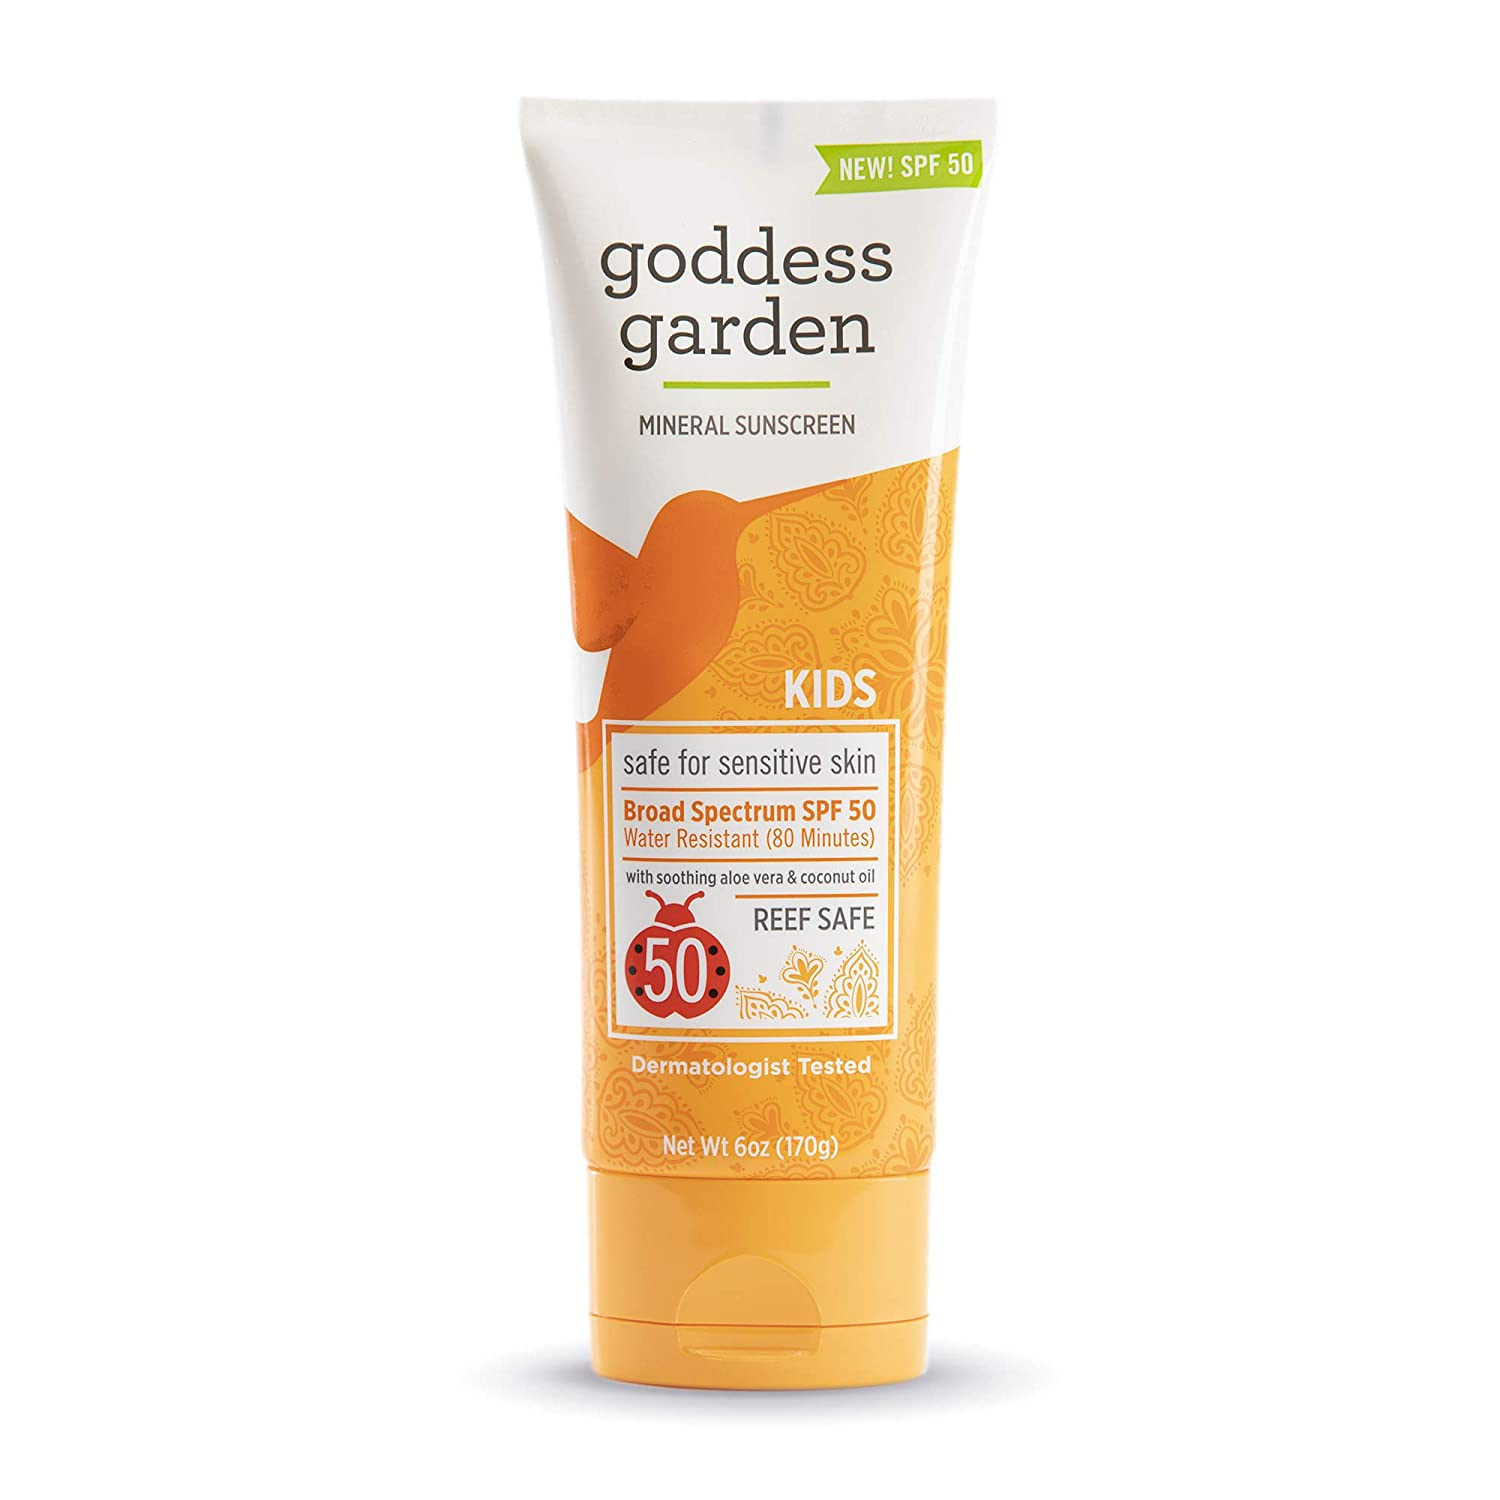 Goddess Garden - Kids SPF 50 Mineral Sunscreen Lotion - Sensitive Skin, Reef Safe, Sheer Zinc, Broad Spectrum, Water Resistant, Non-Nano, Vegan, Leaping Bunny certified Cruelty-Free - 6 oz Tube